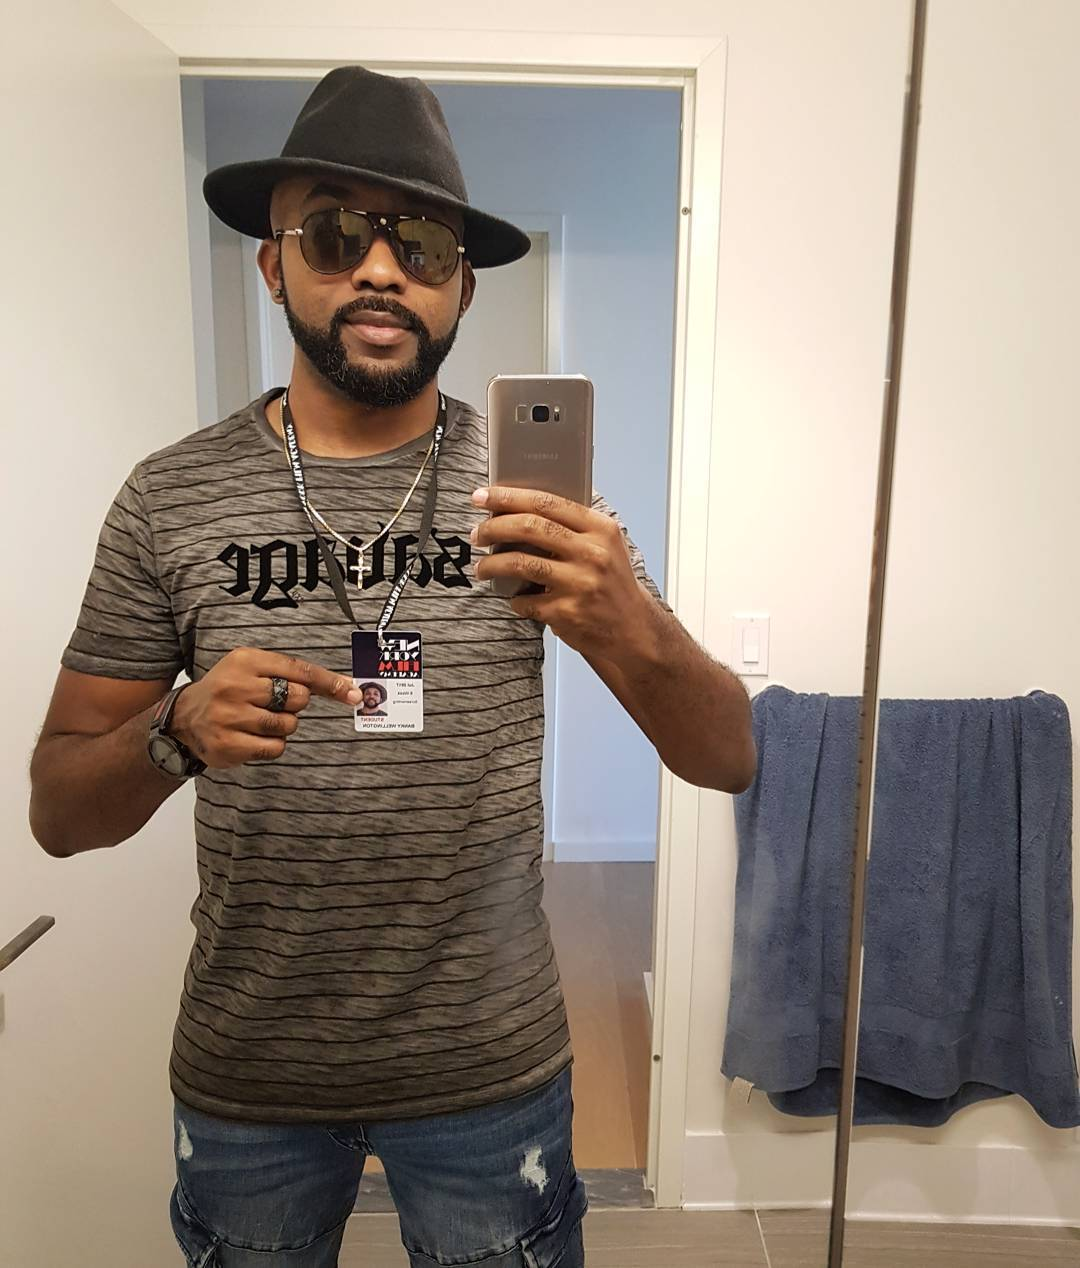 Learning, Growing And Getting Better: Banky W Enrolls At New York Film Academy To Study Screenwriting